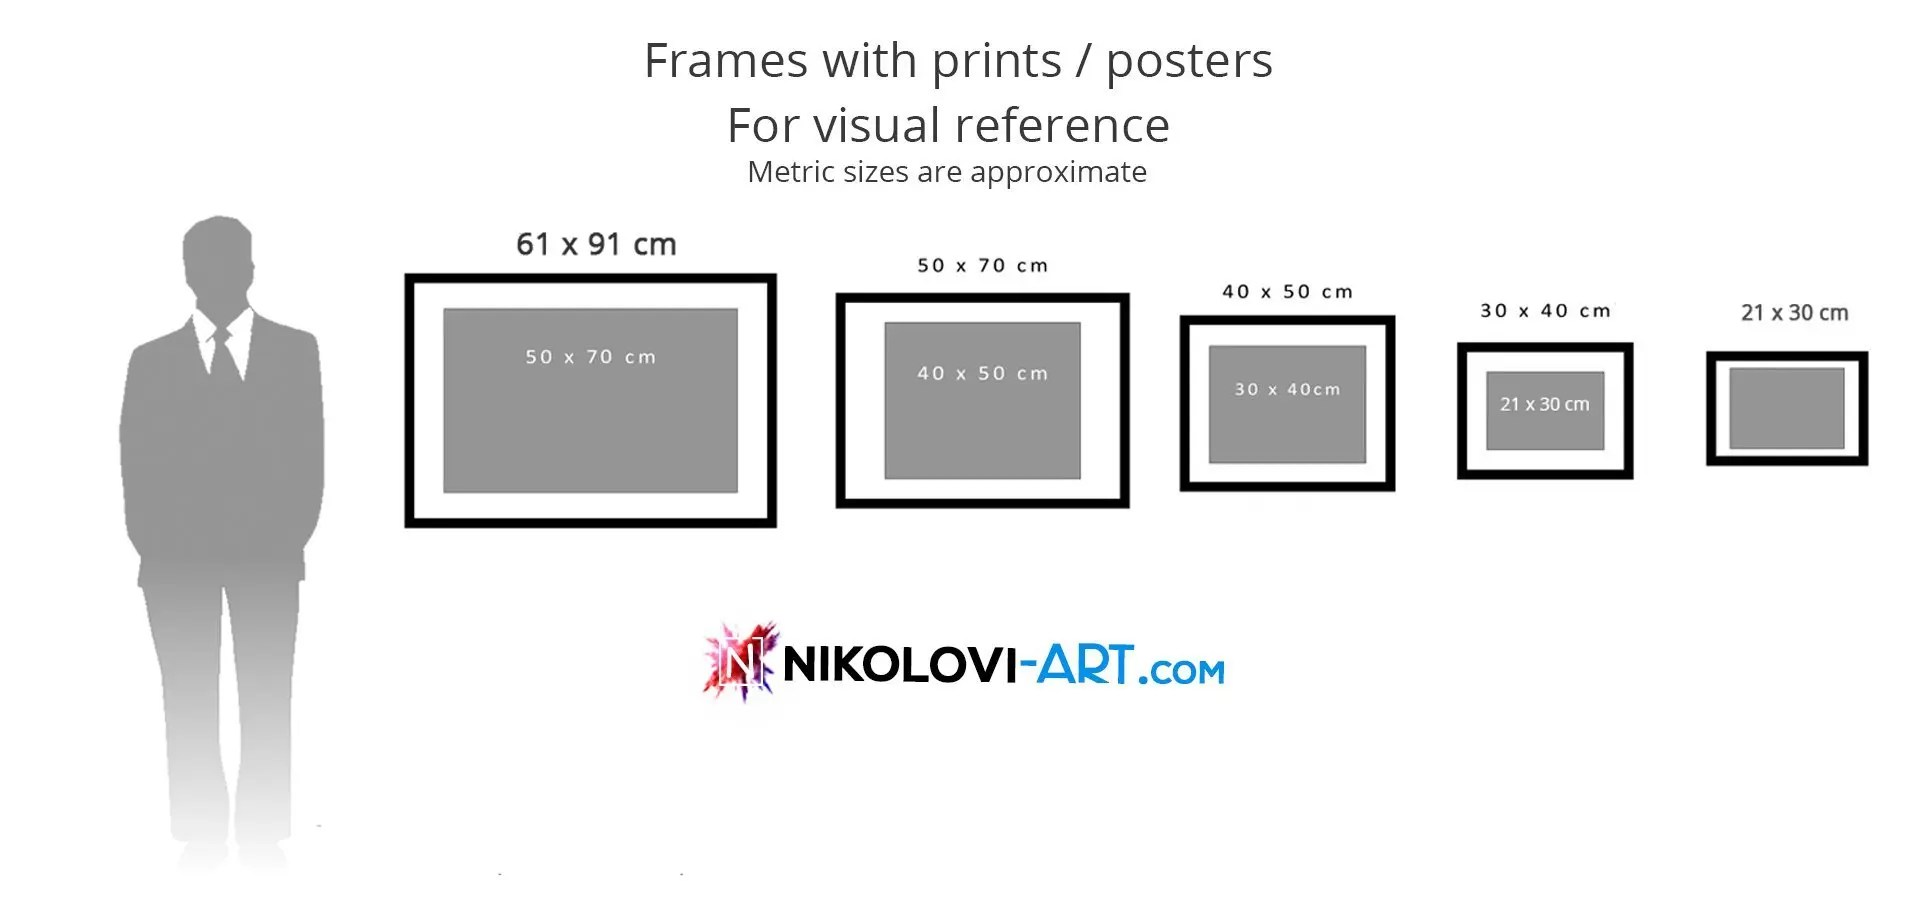 different sizes of artworks in cm and